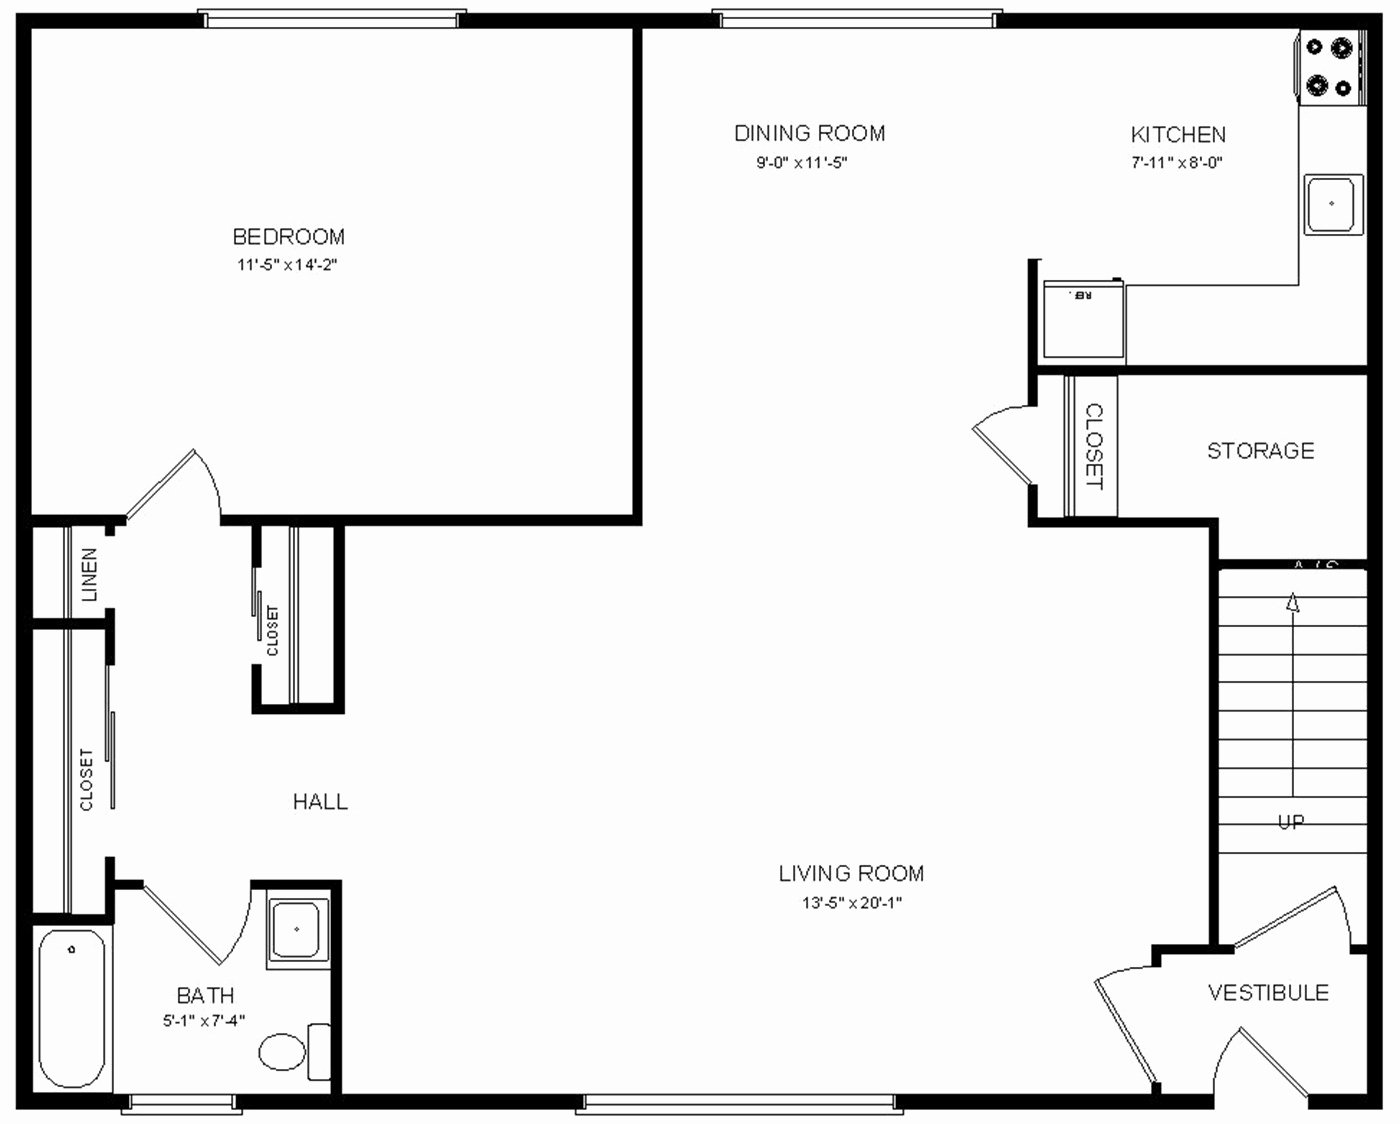 Floor Plan Templates Free Fresh Floor Plan Template